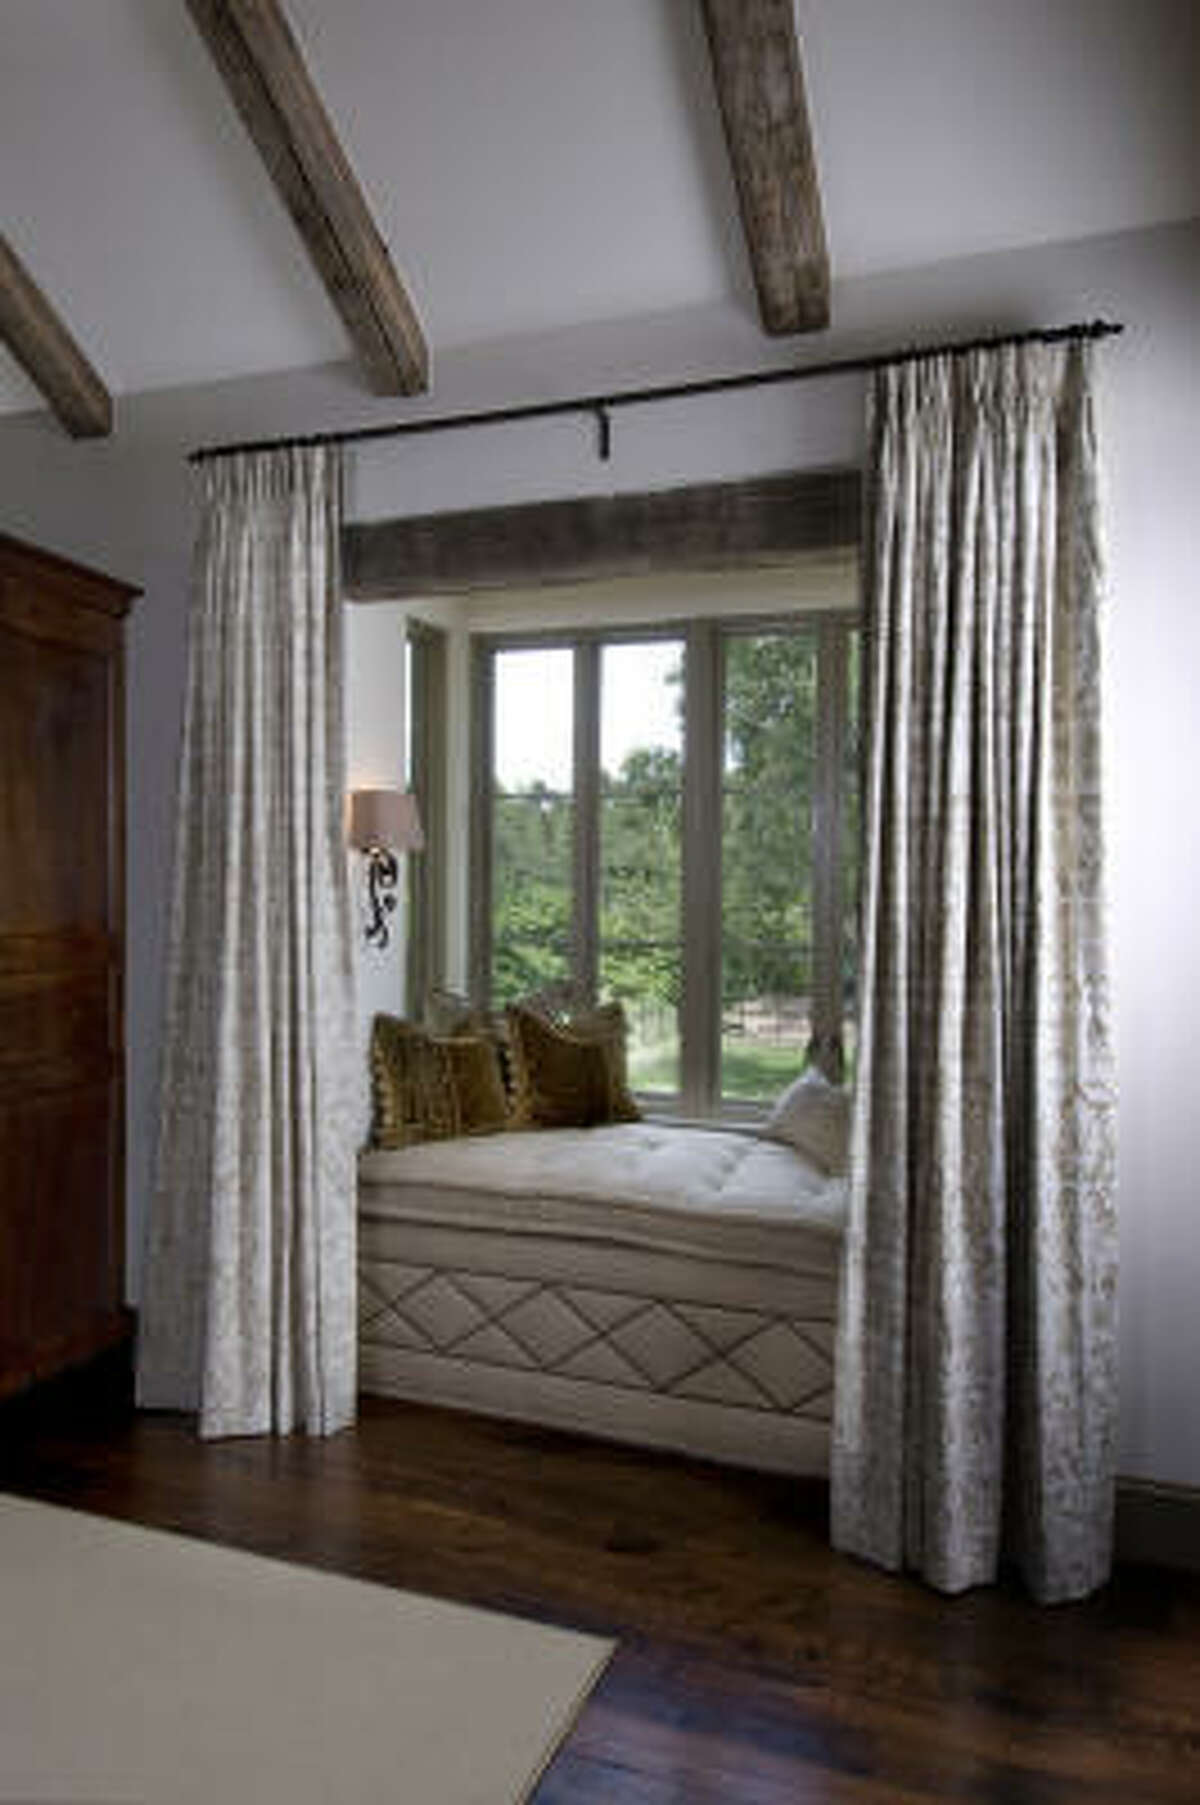 The nook in this master bedroom in Tanglewood is lined with a mattress.